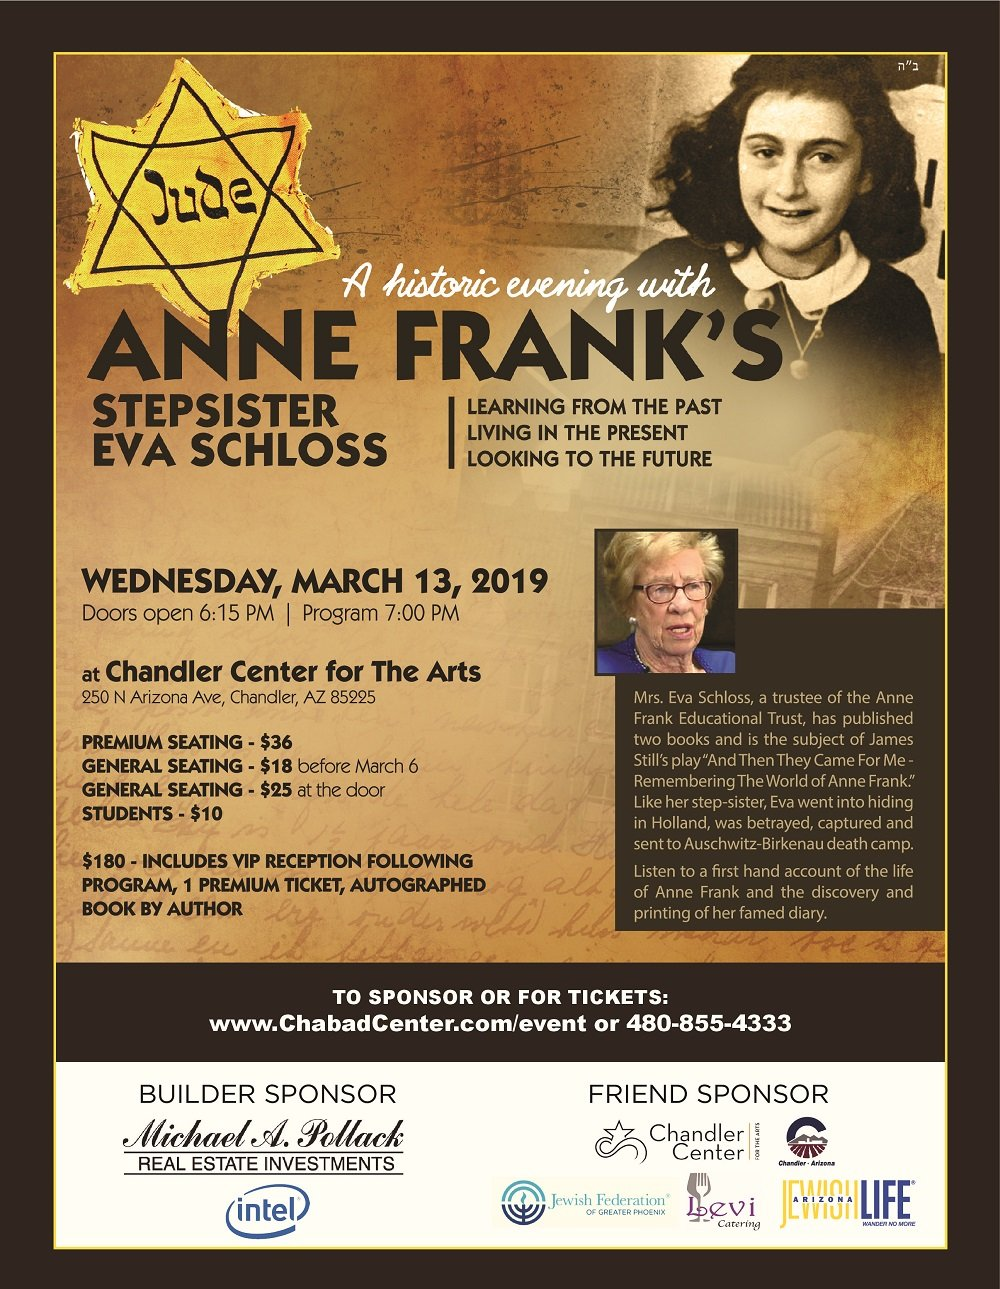 A Historic Evening with Eva Schloss @ Chandler Center for the Arts